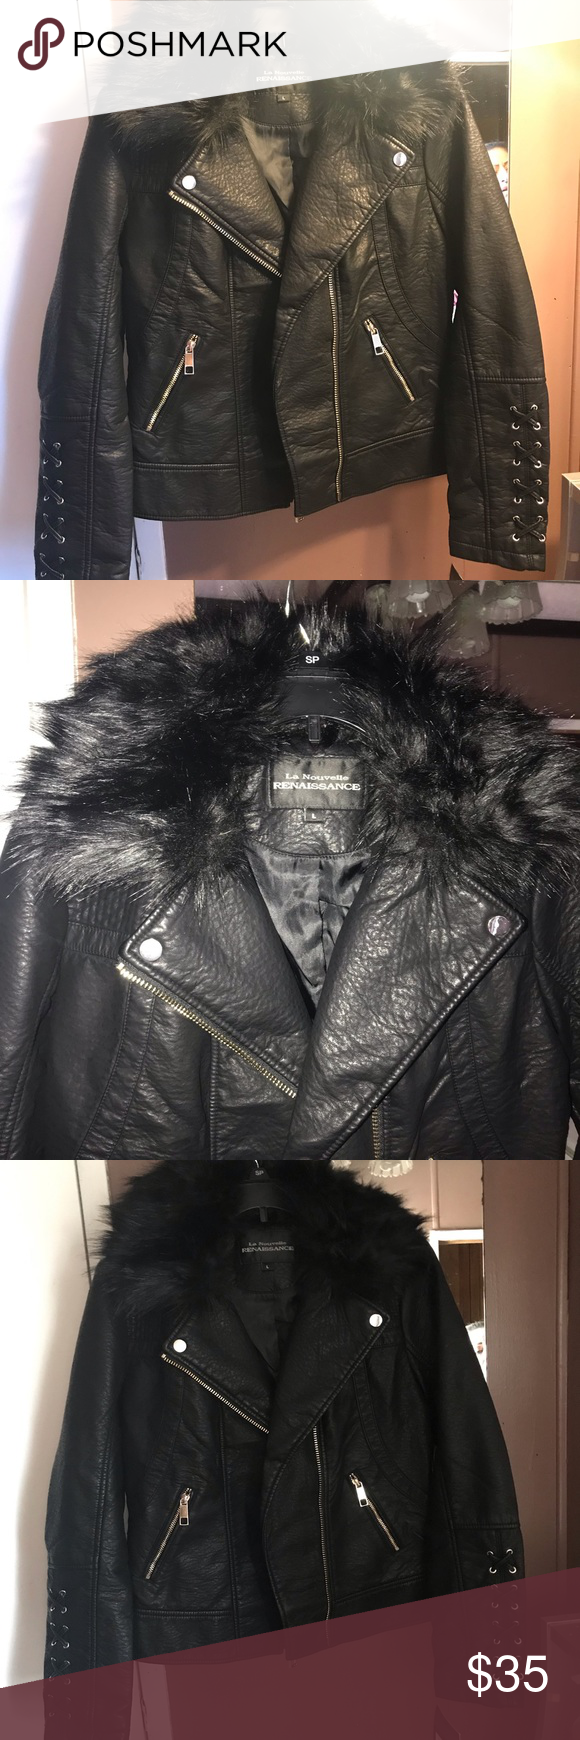 725343aea150 Leather jacket Black new jacket Fur can be removed Jackets & Coats. Visit.  March 2019